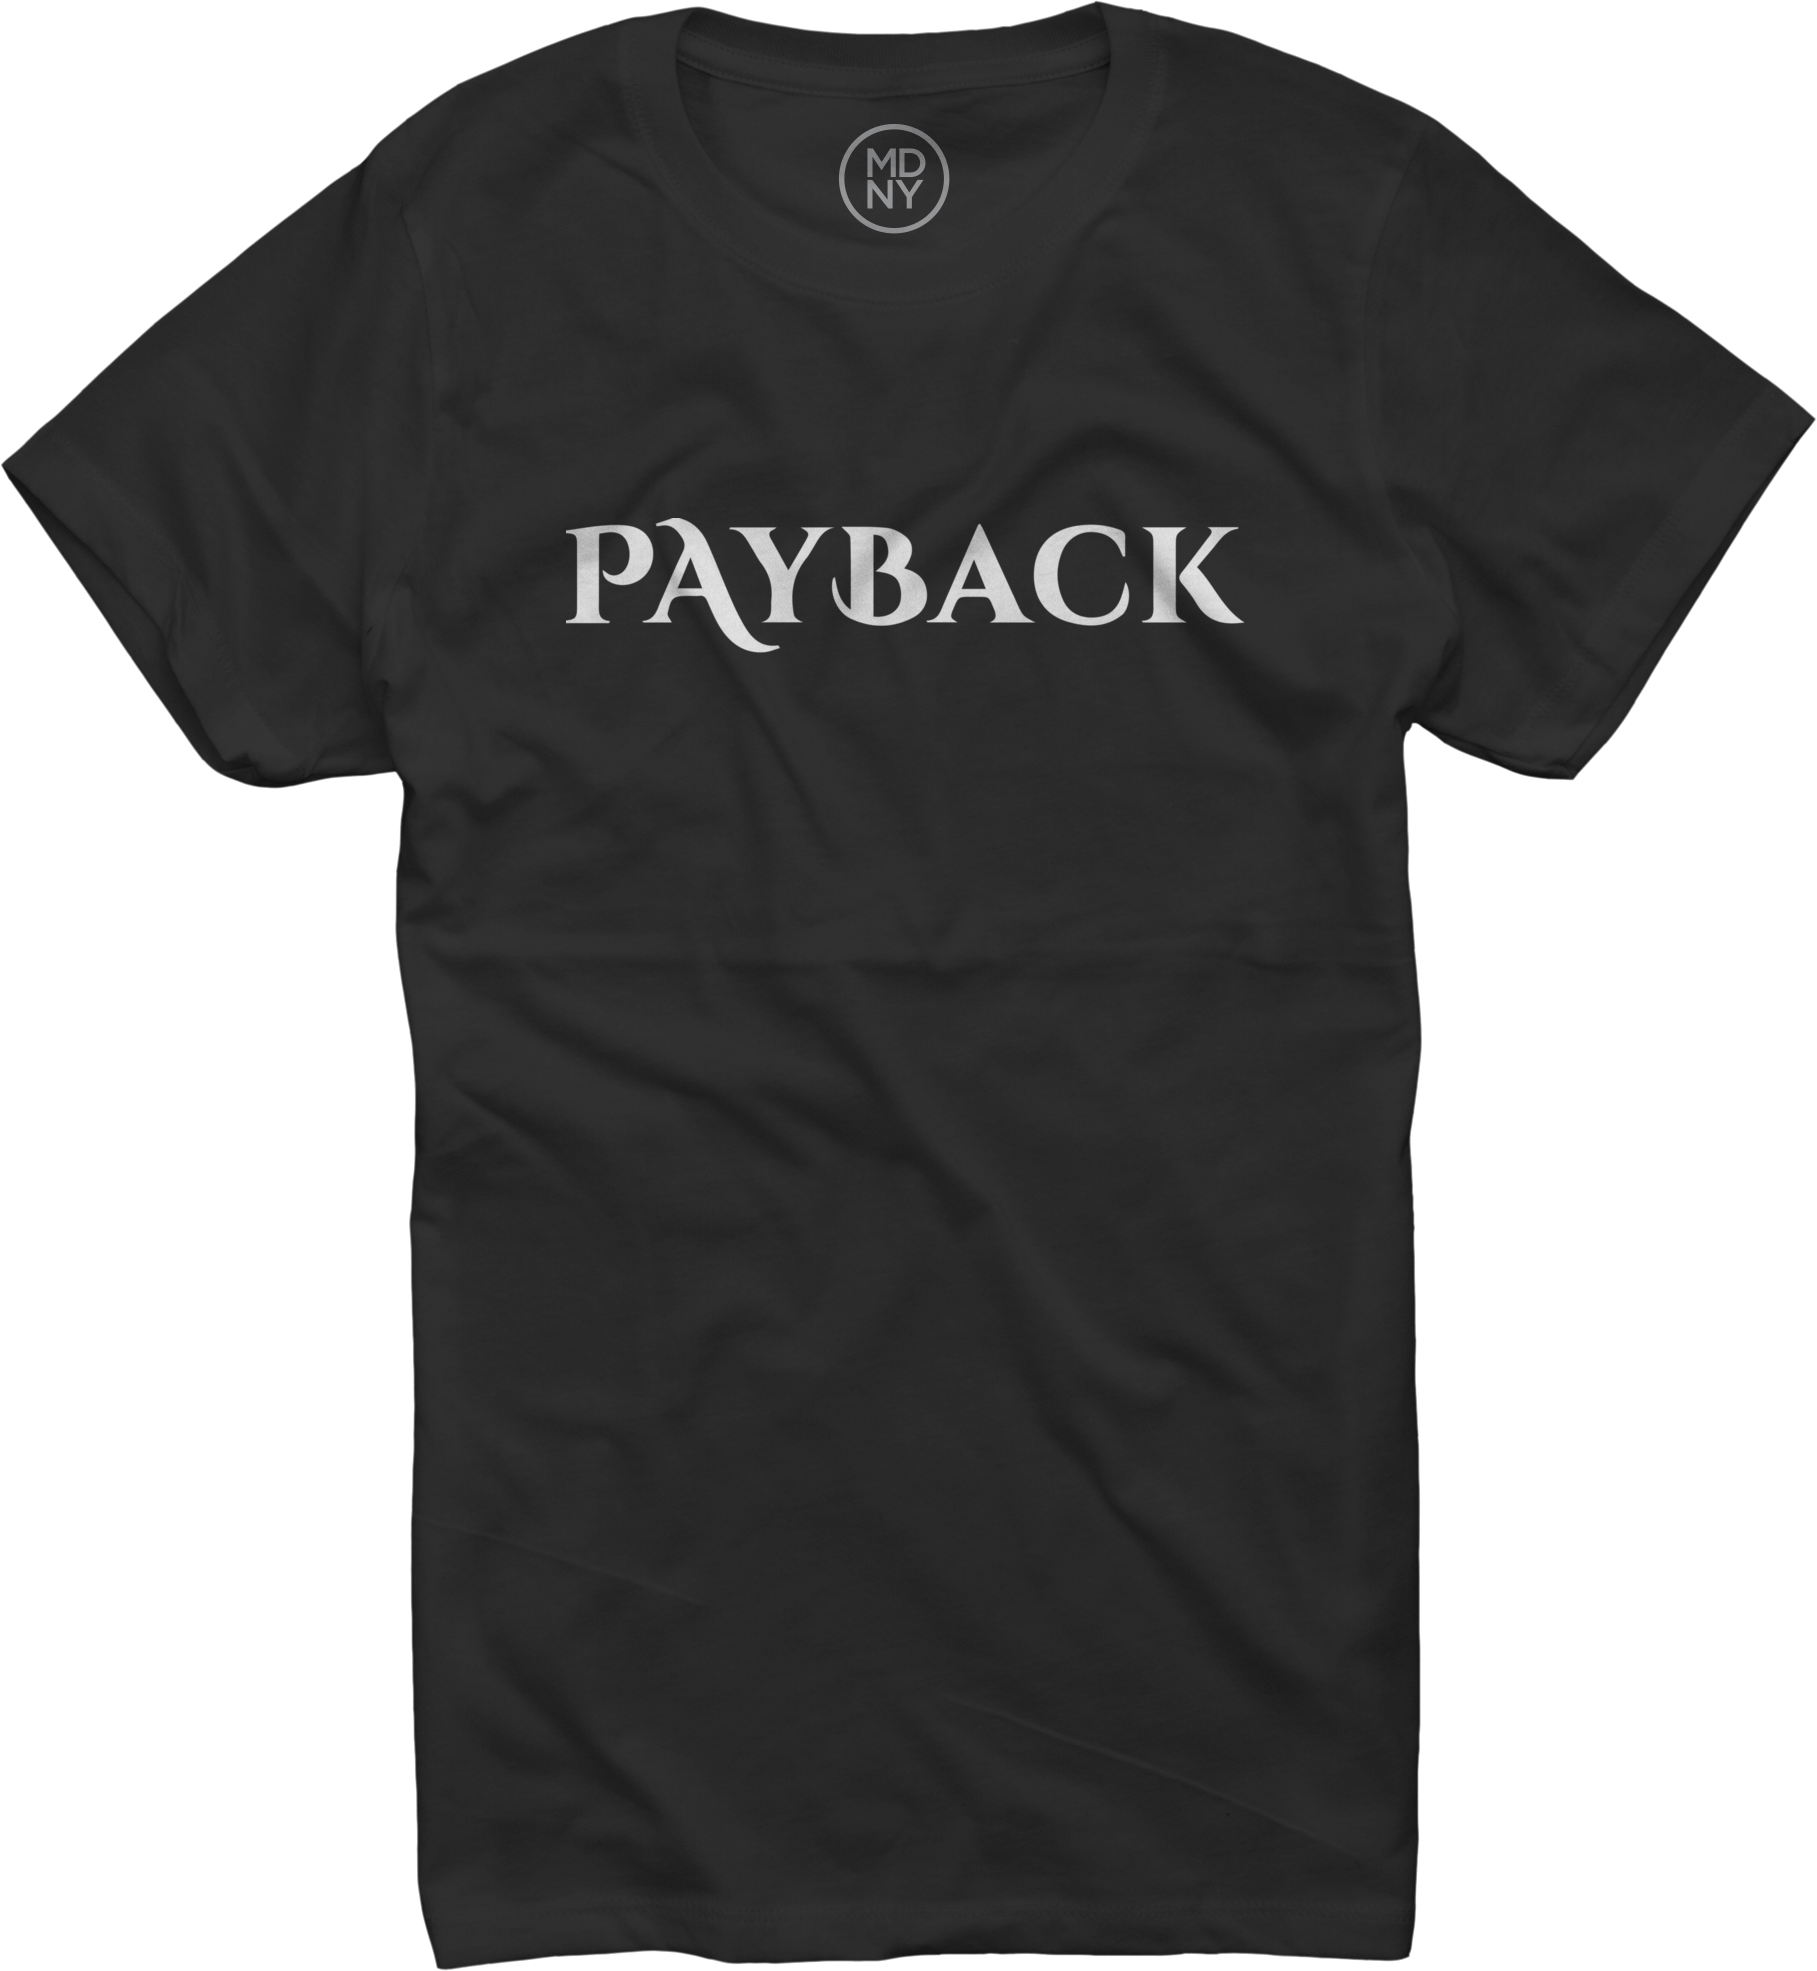 Payback Women's T-Shirt